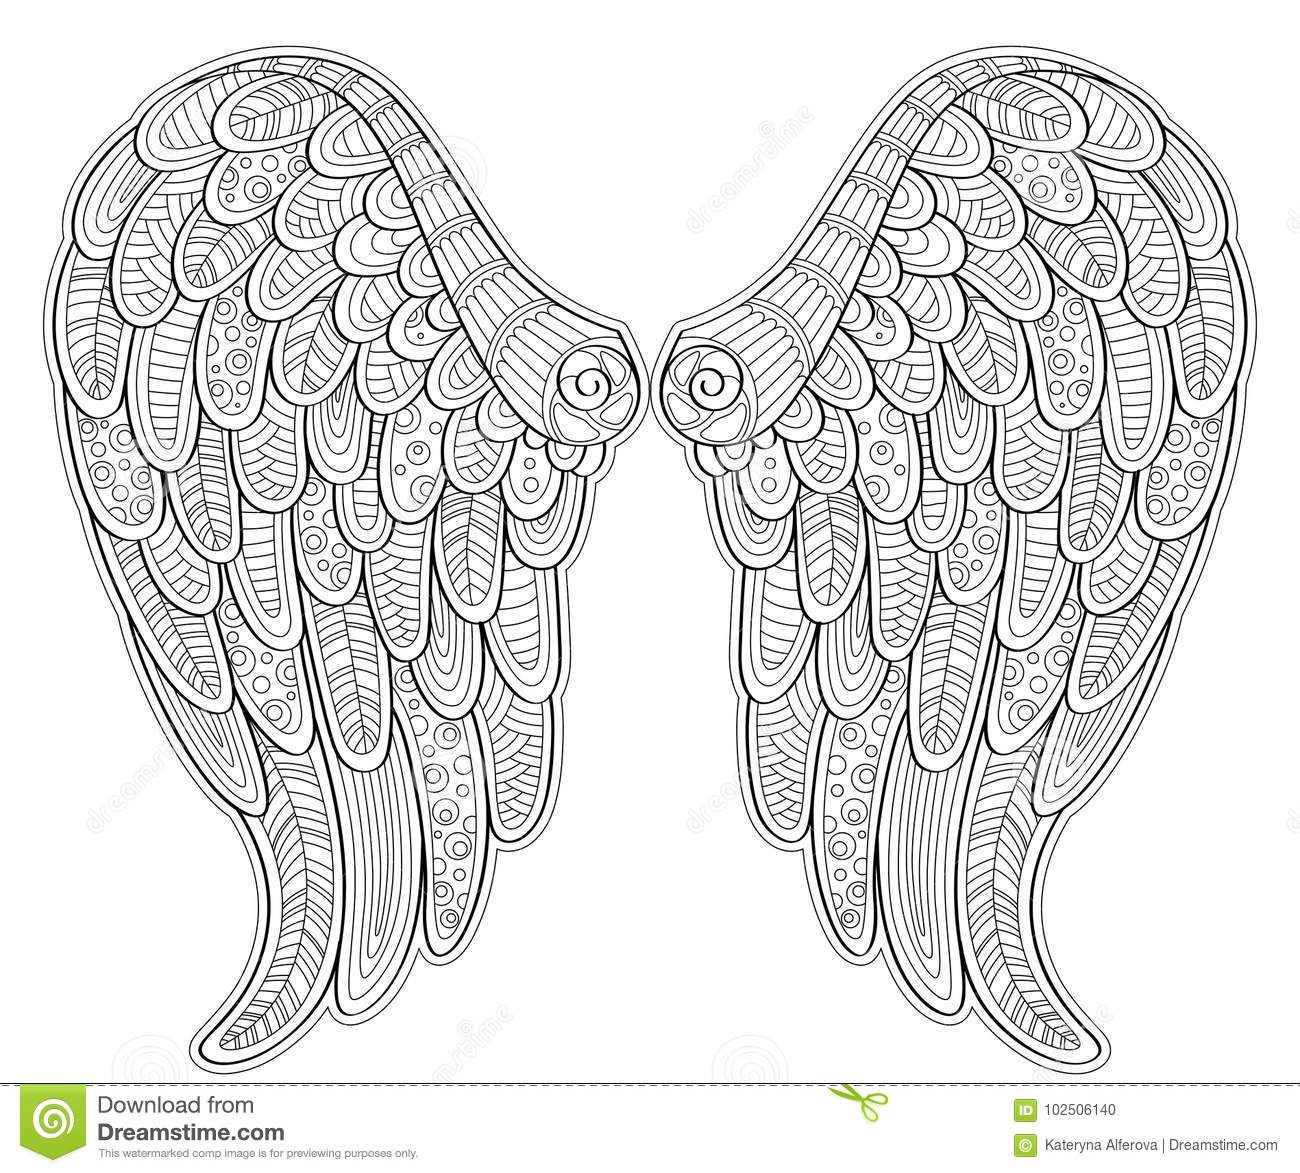 193+ Mandala Angel Wings Svg – SVG,PNG,DXF,EPS include